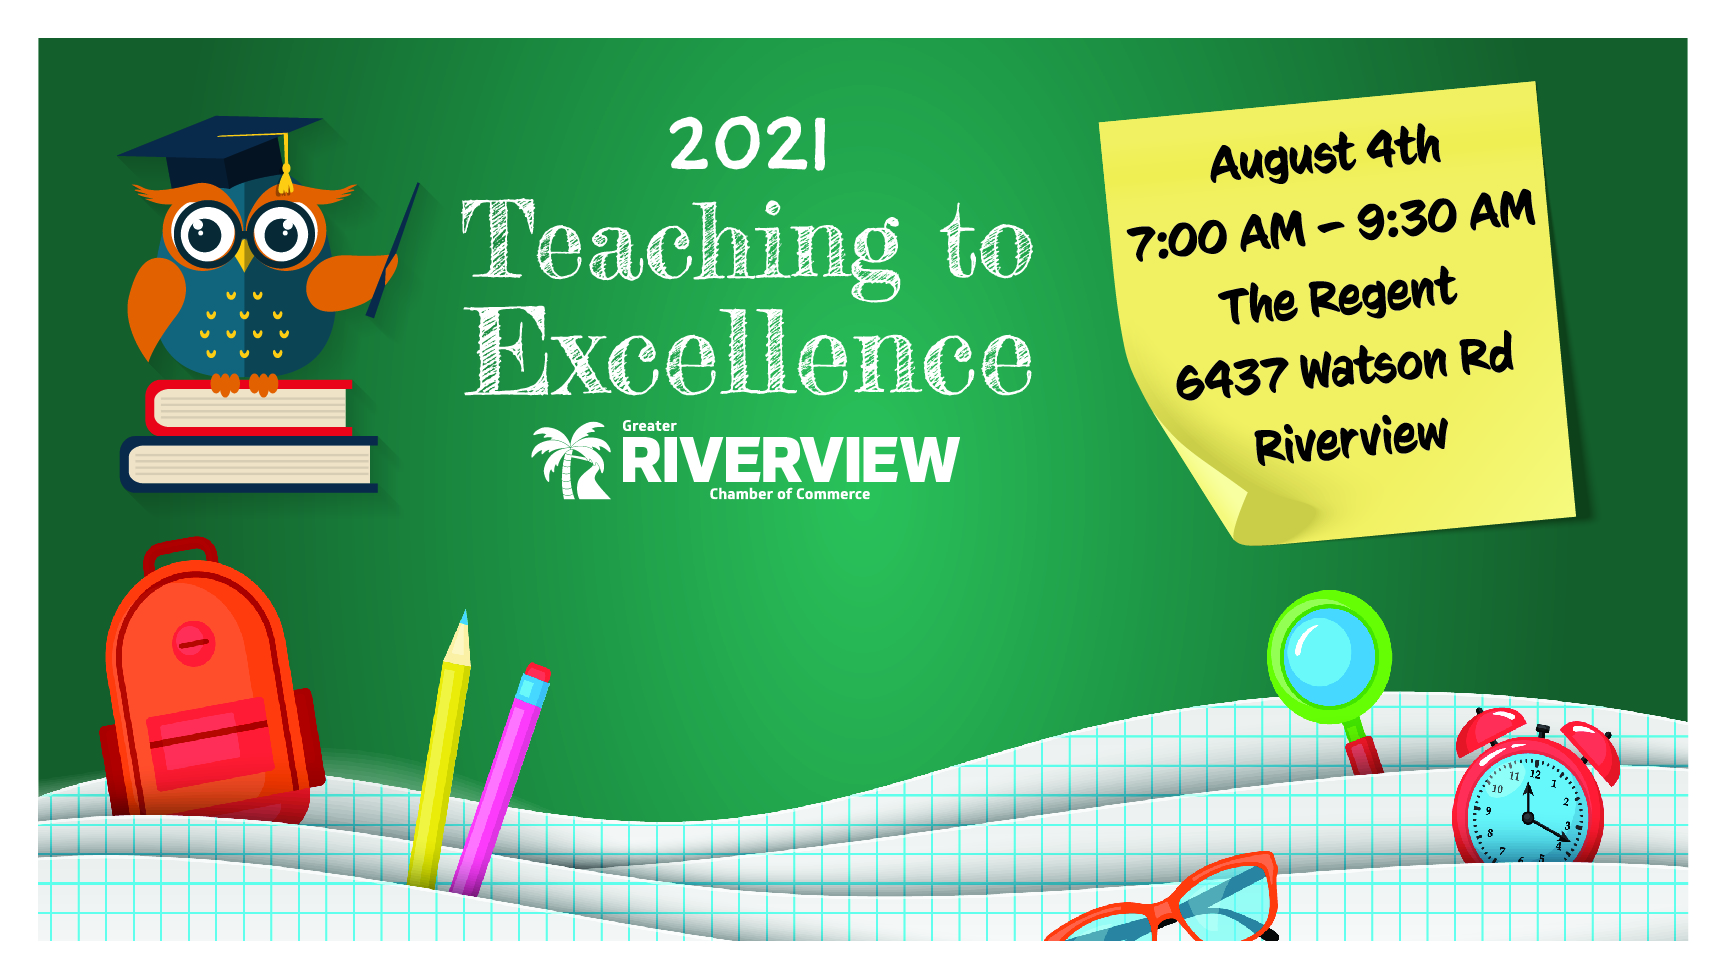 2021 Teaching to Excellence